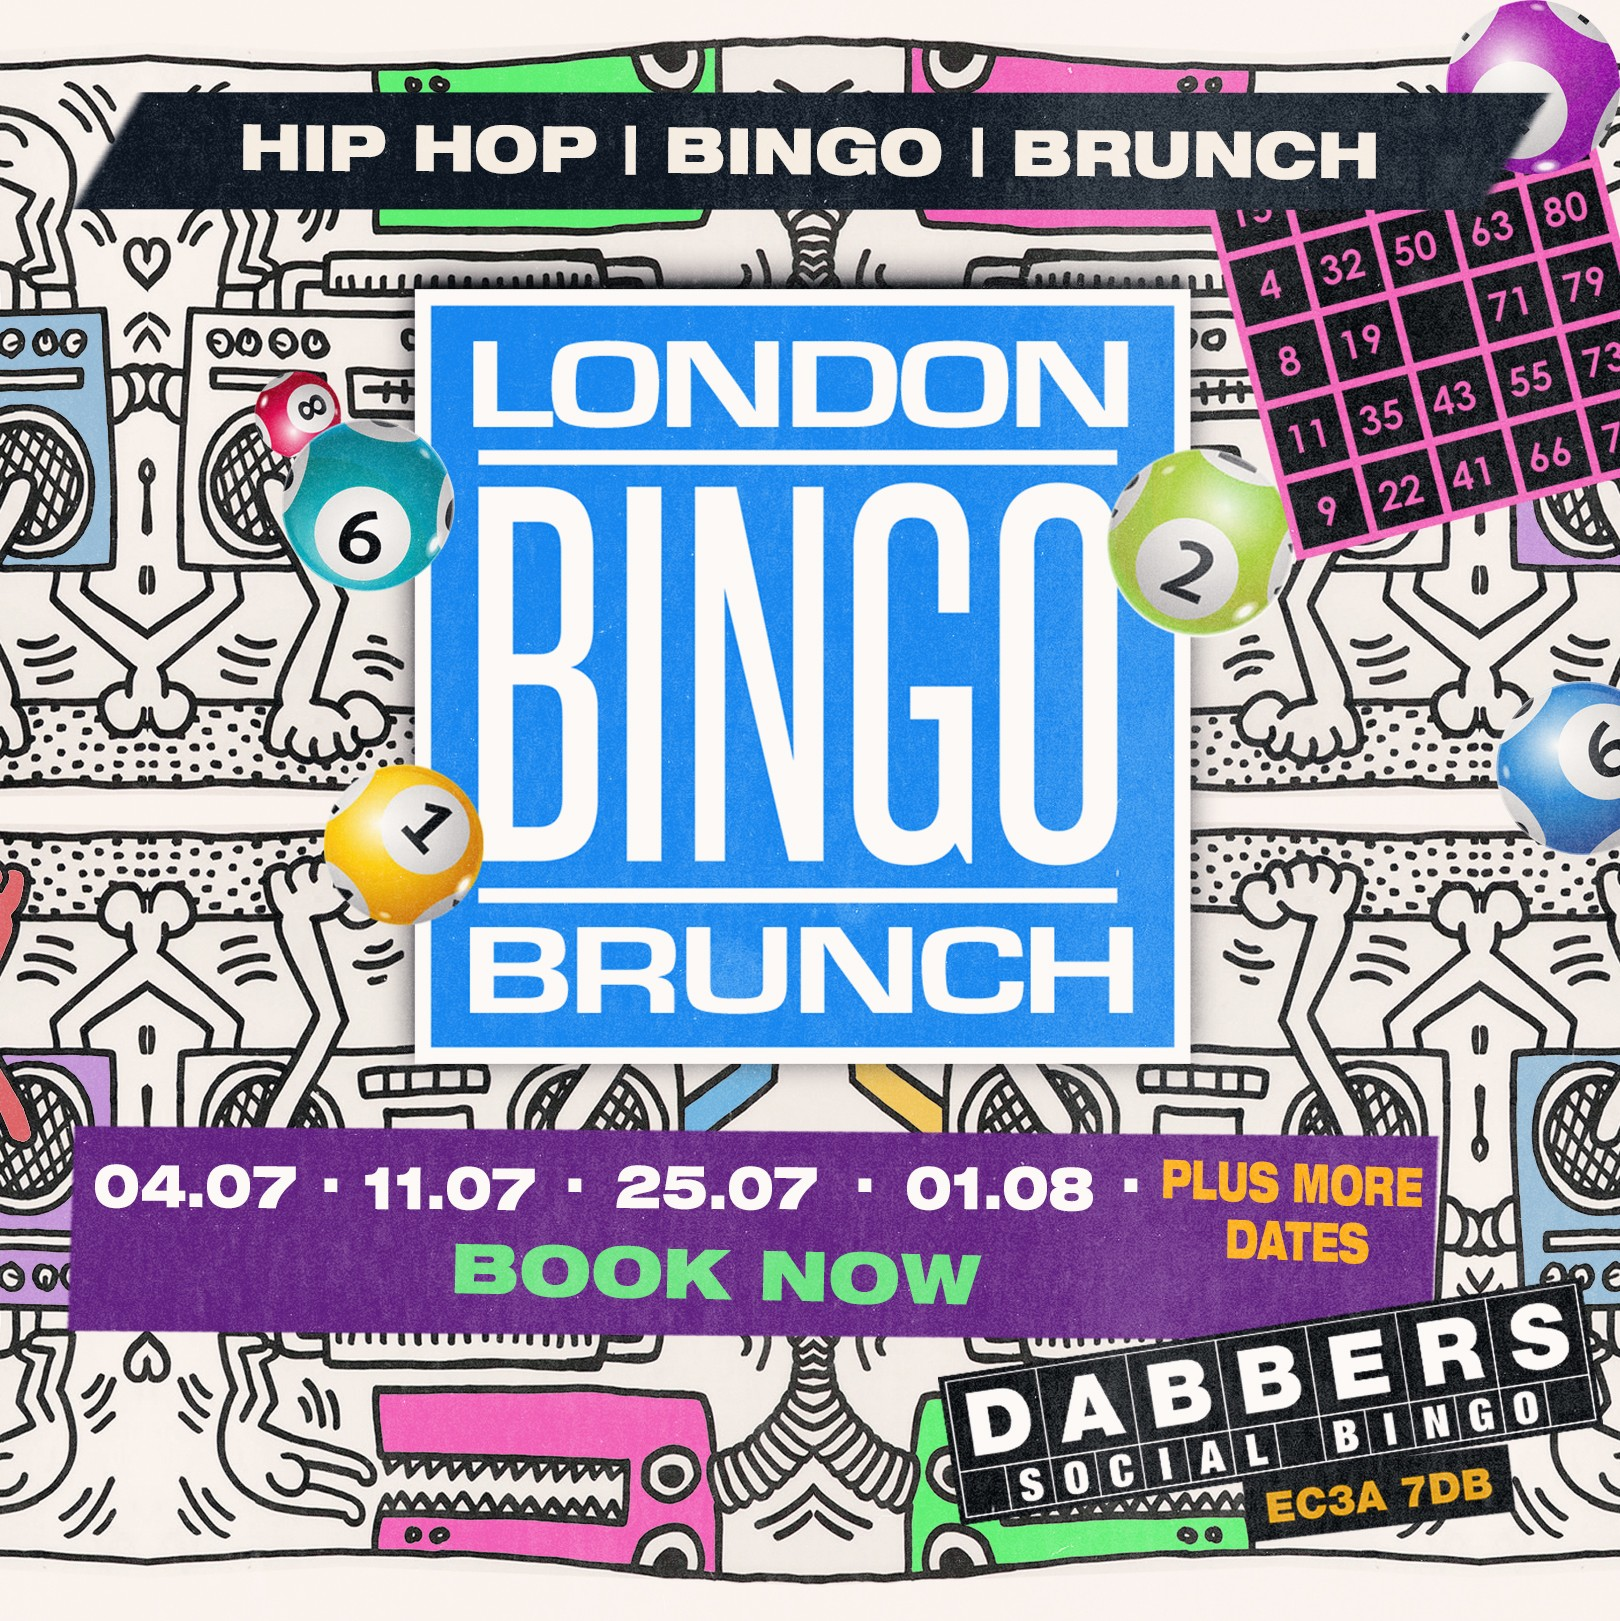 Hip Hop Bingo Brunch